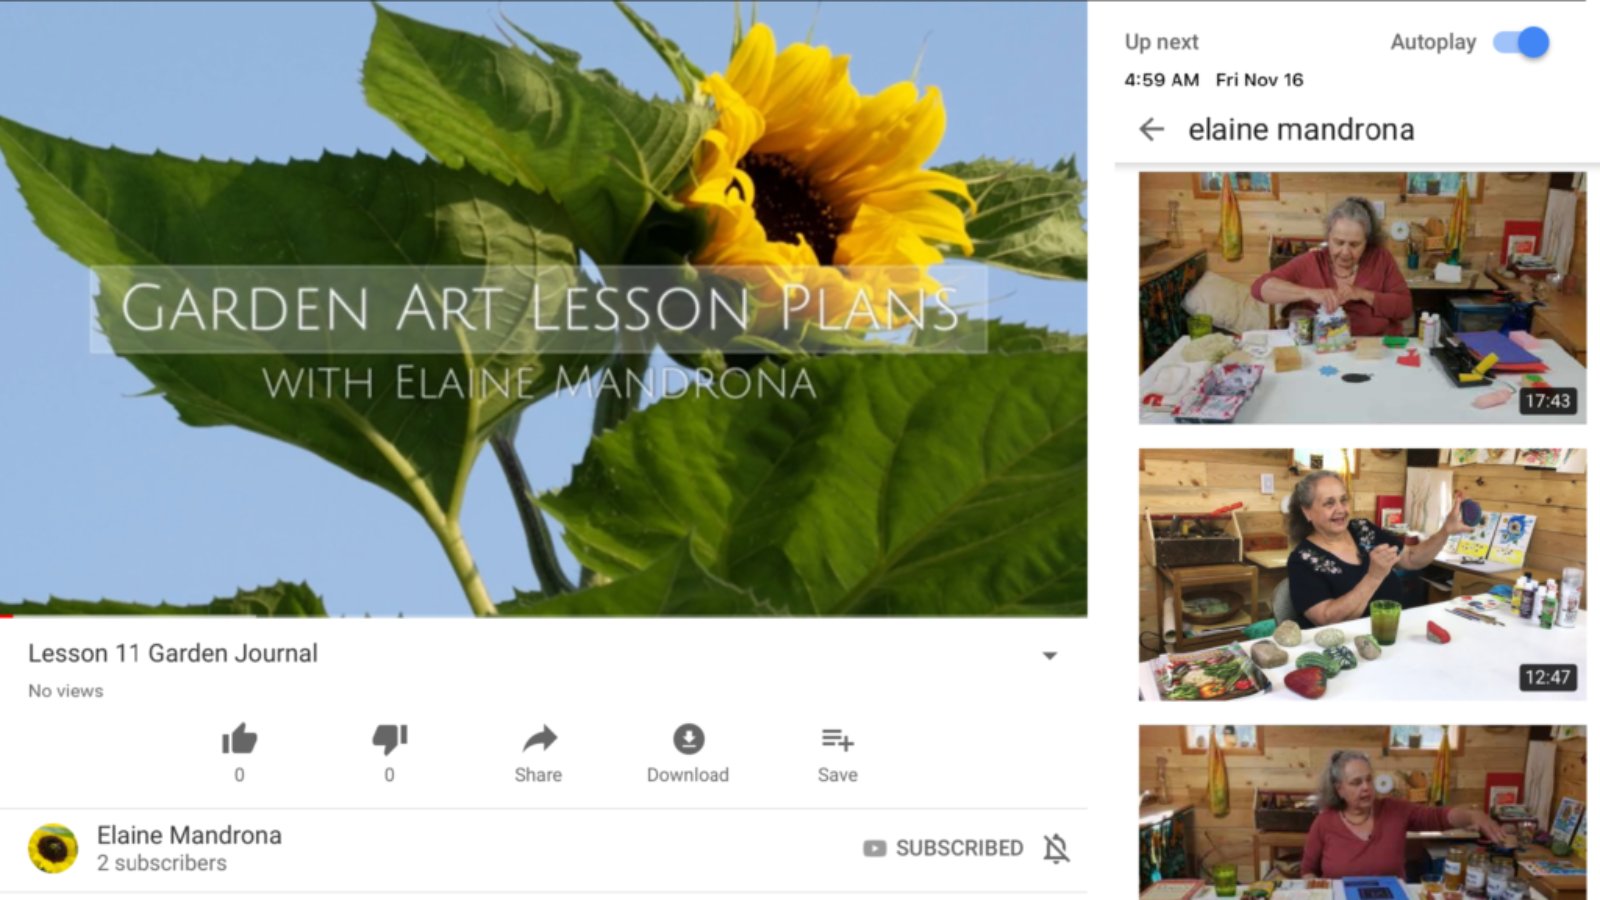 Screenshot of a YouTube channel